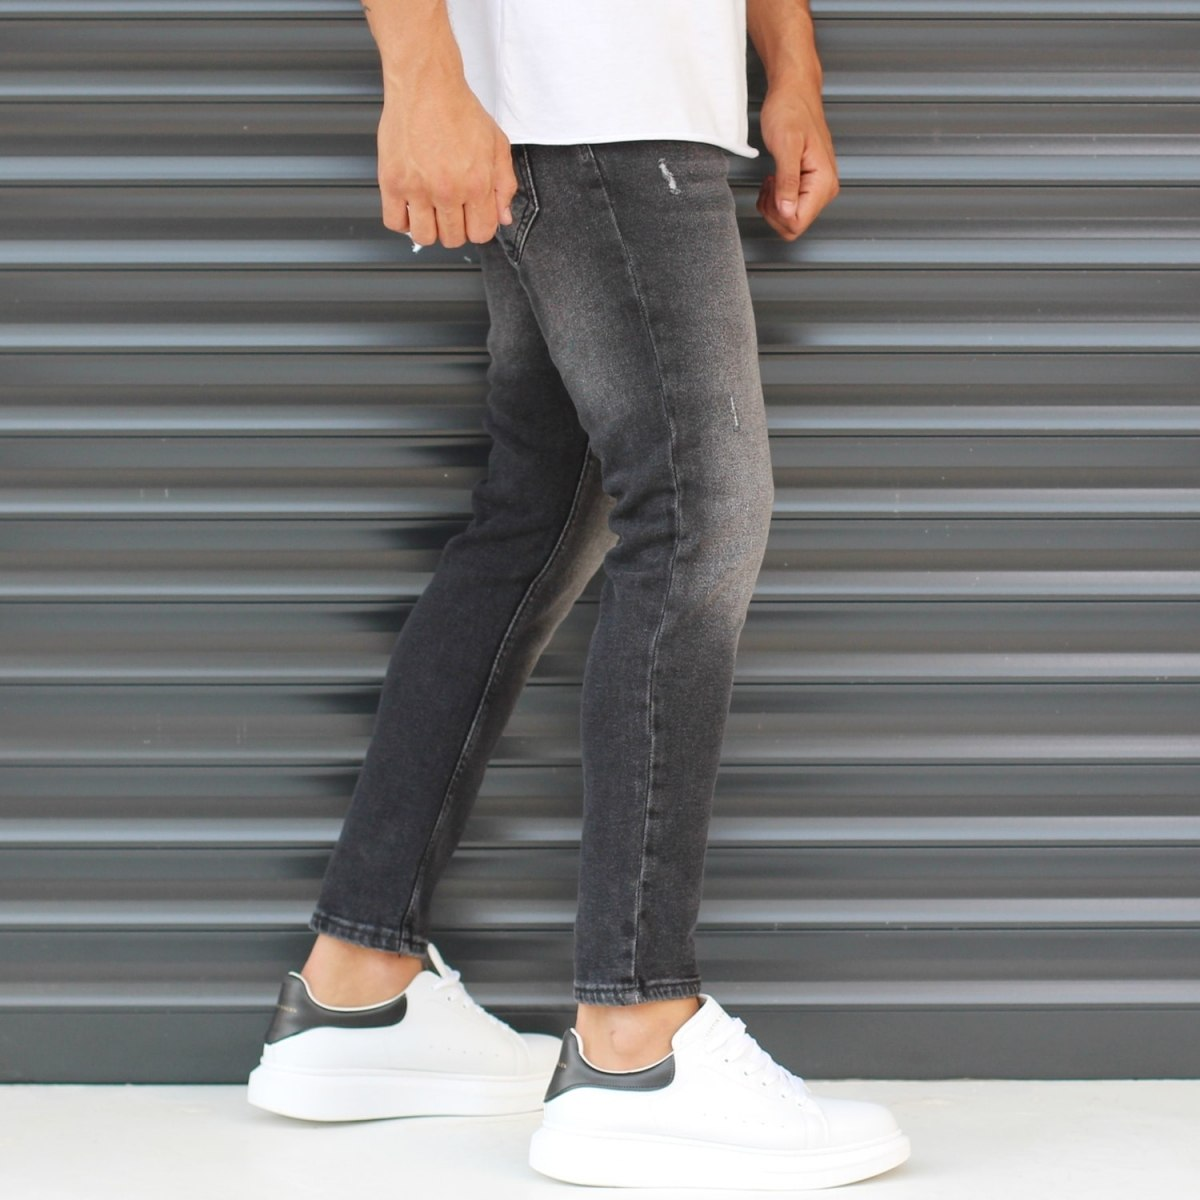 Men's Basic Stonewashed Jeans In Black Mv Premium Brand - 3